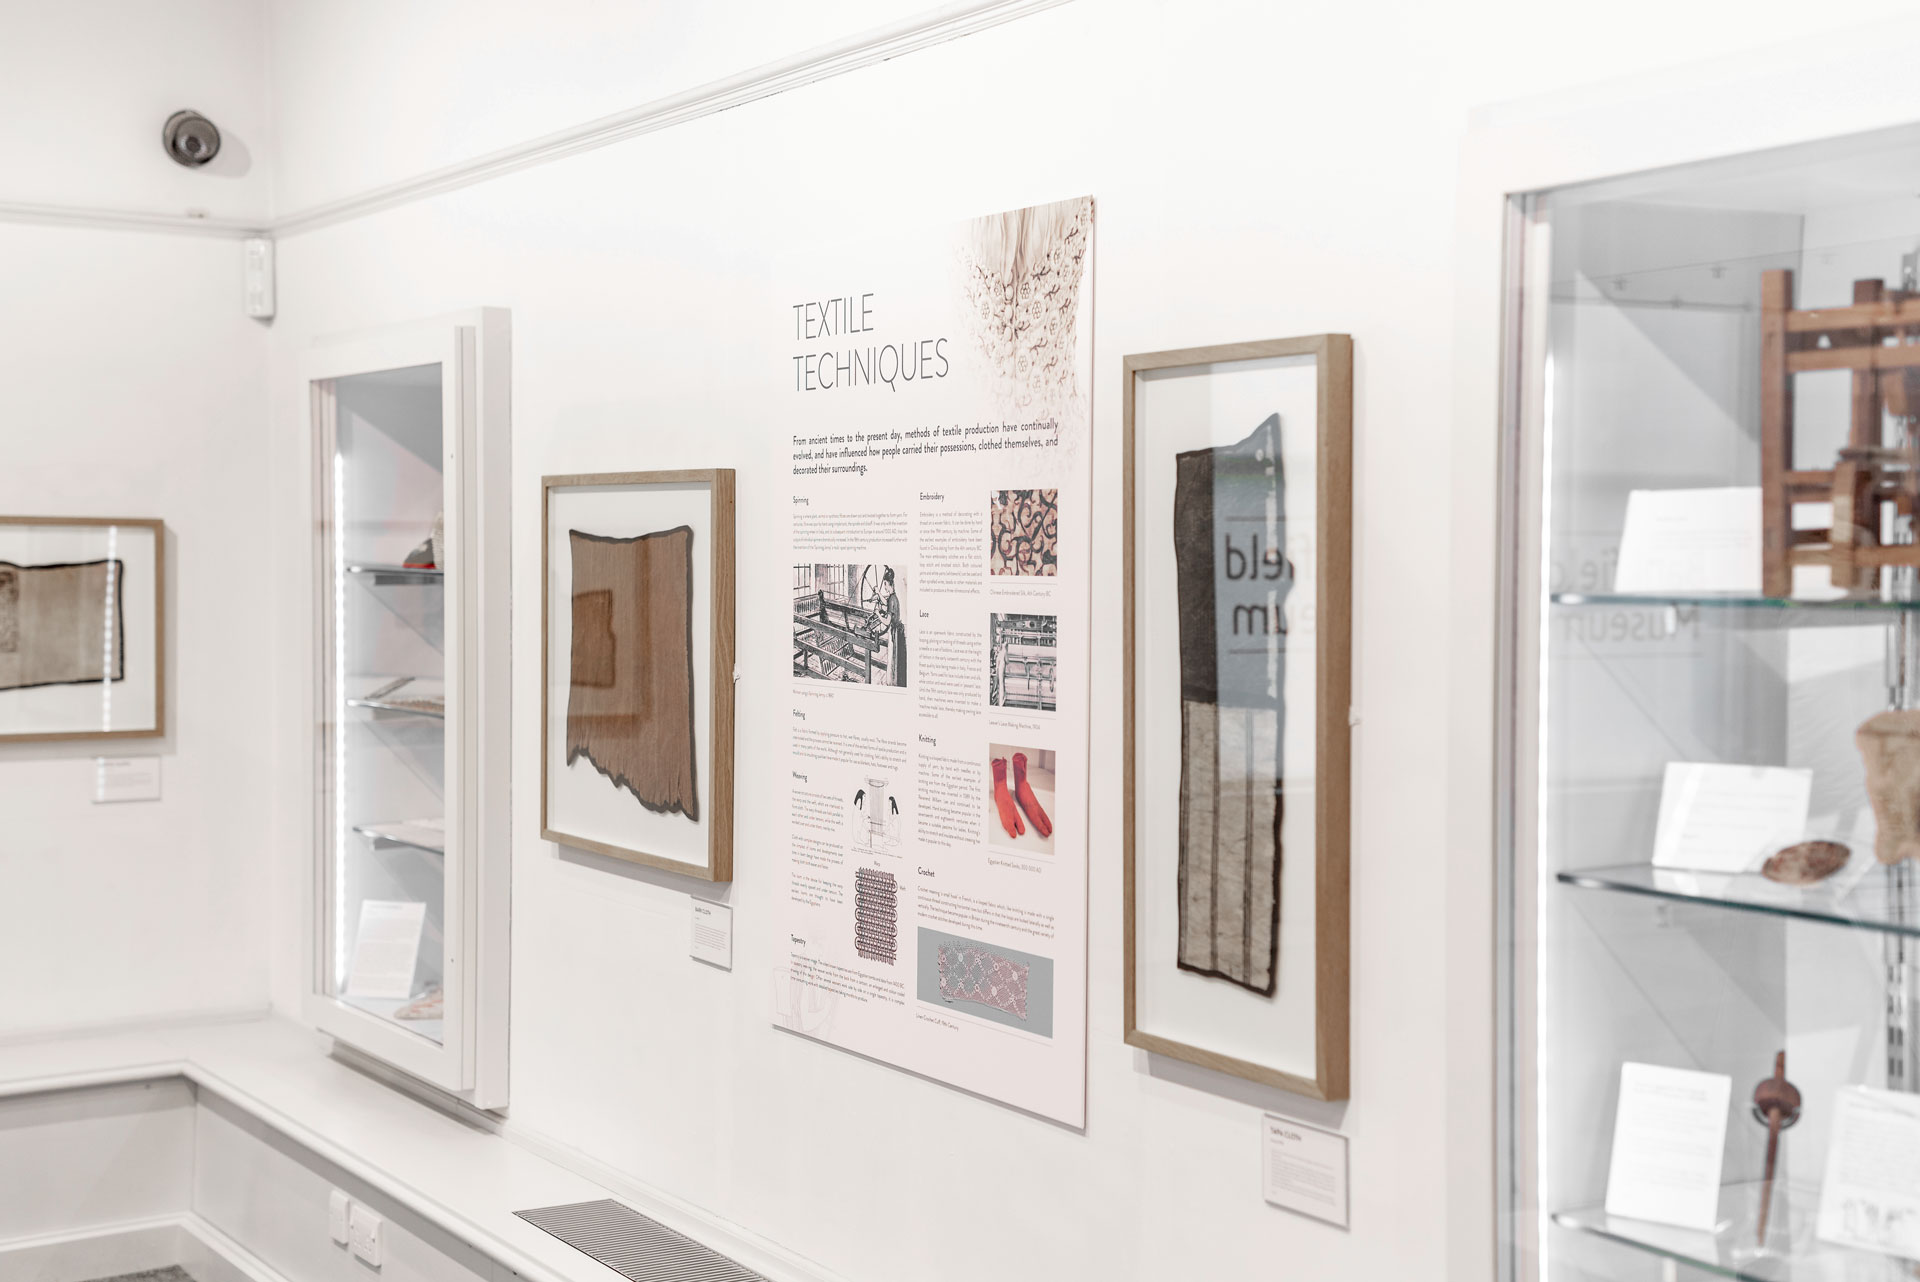 The Fashion Gallery Panel Display Design Bankfield Museum Halifax Calderdale Council IDEA Design Rotherham Sheffield